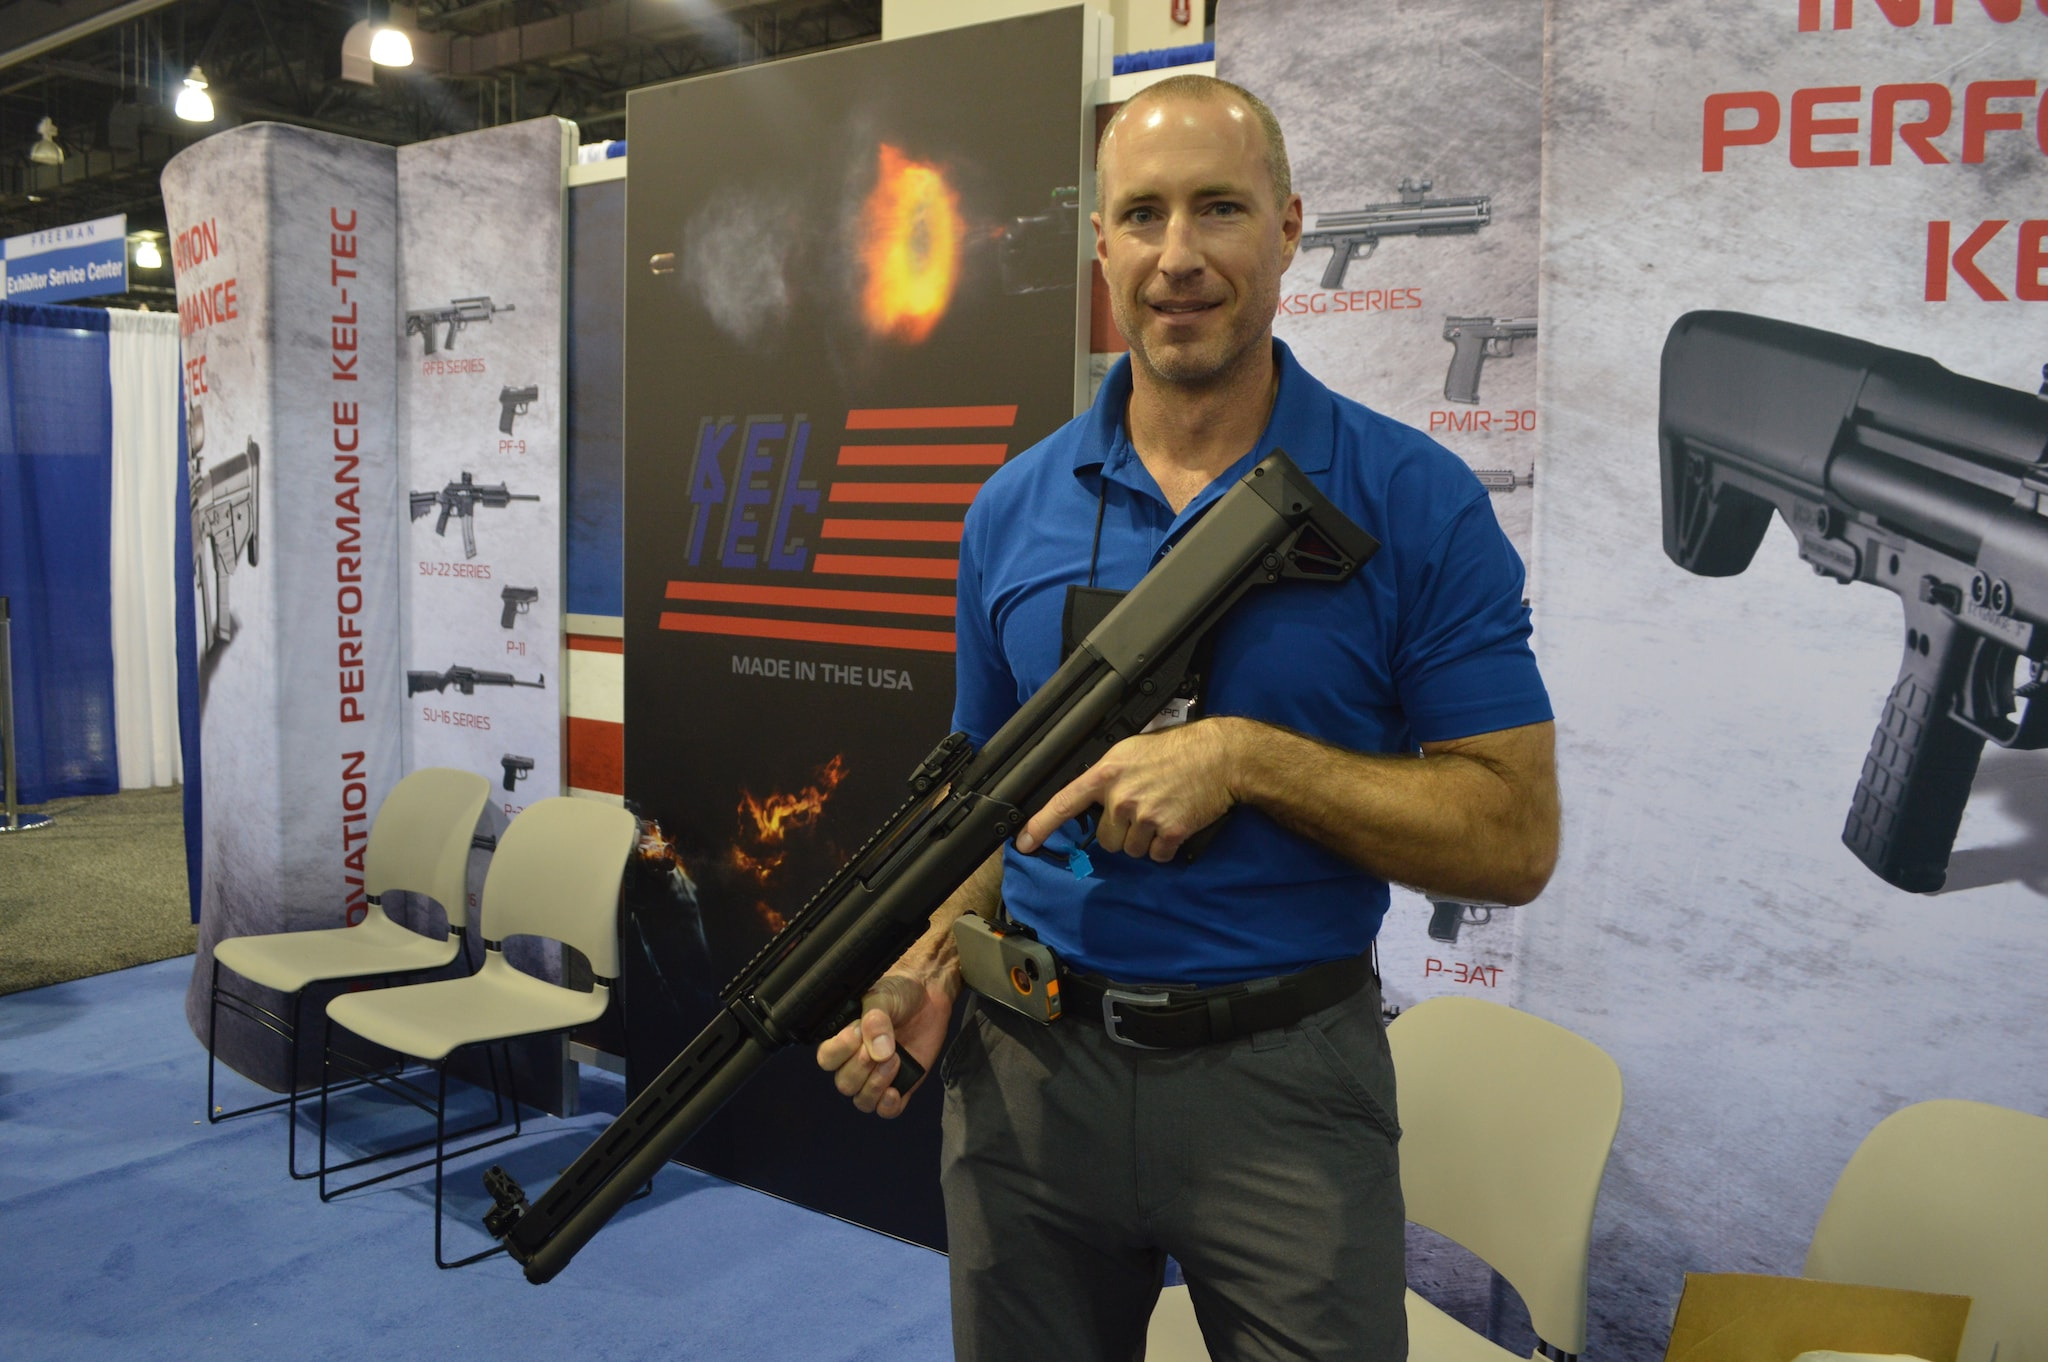 """Kel Tec has not been sitting back since the introduction of their wildly popular KSG bullpup-length shotgun. In fact, this was our first look at the bigger, badder KSG 25, a pump action that holds 20-rounds of 3"""" 12-gauge. If that's not enough home defense firepower, I don't know what is."""